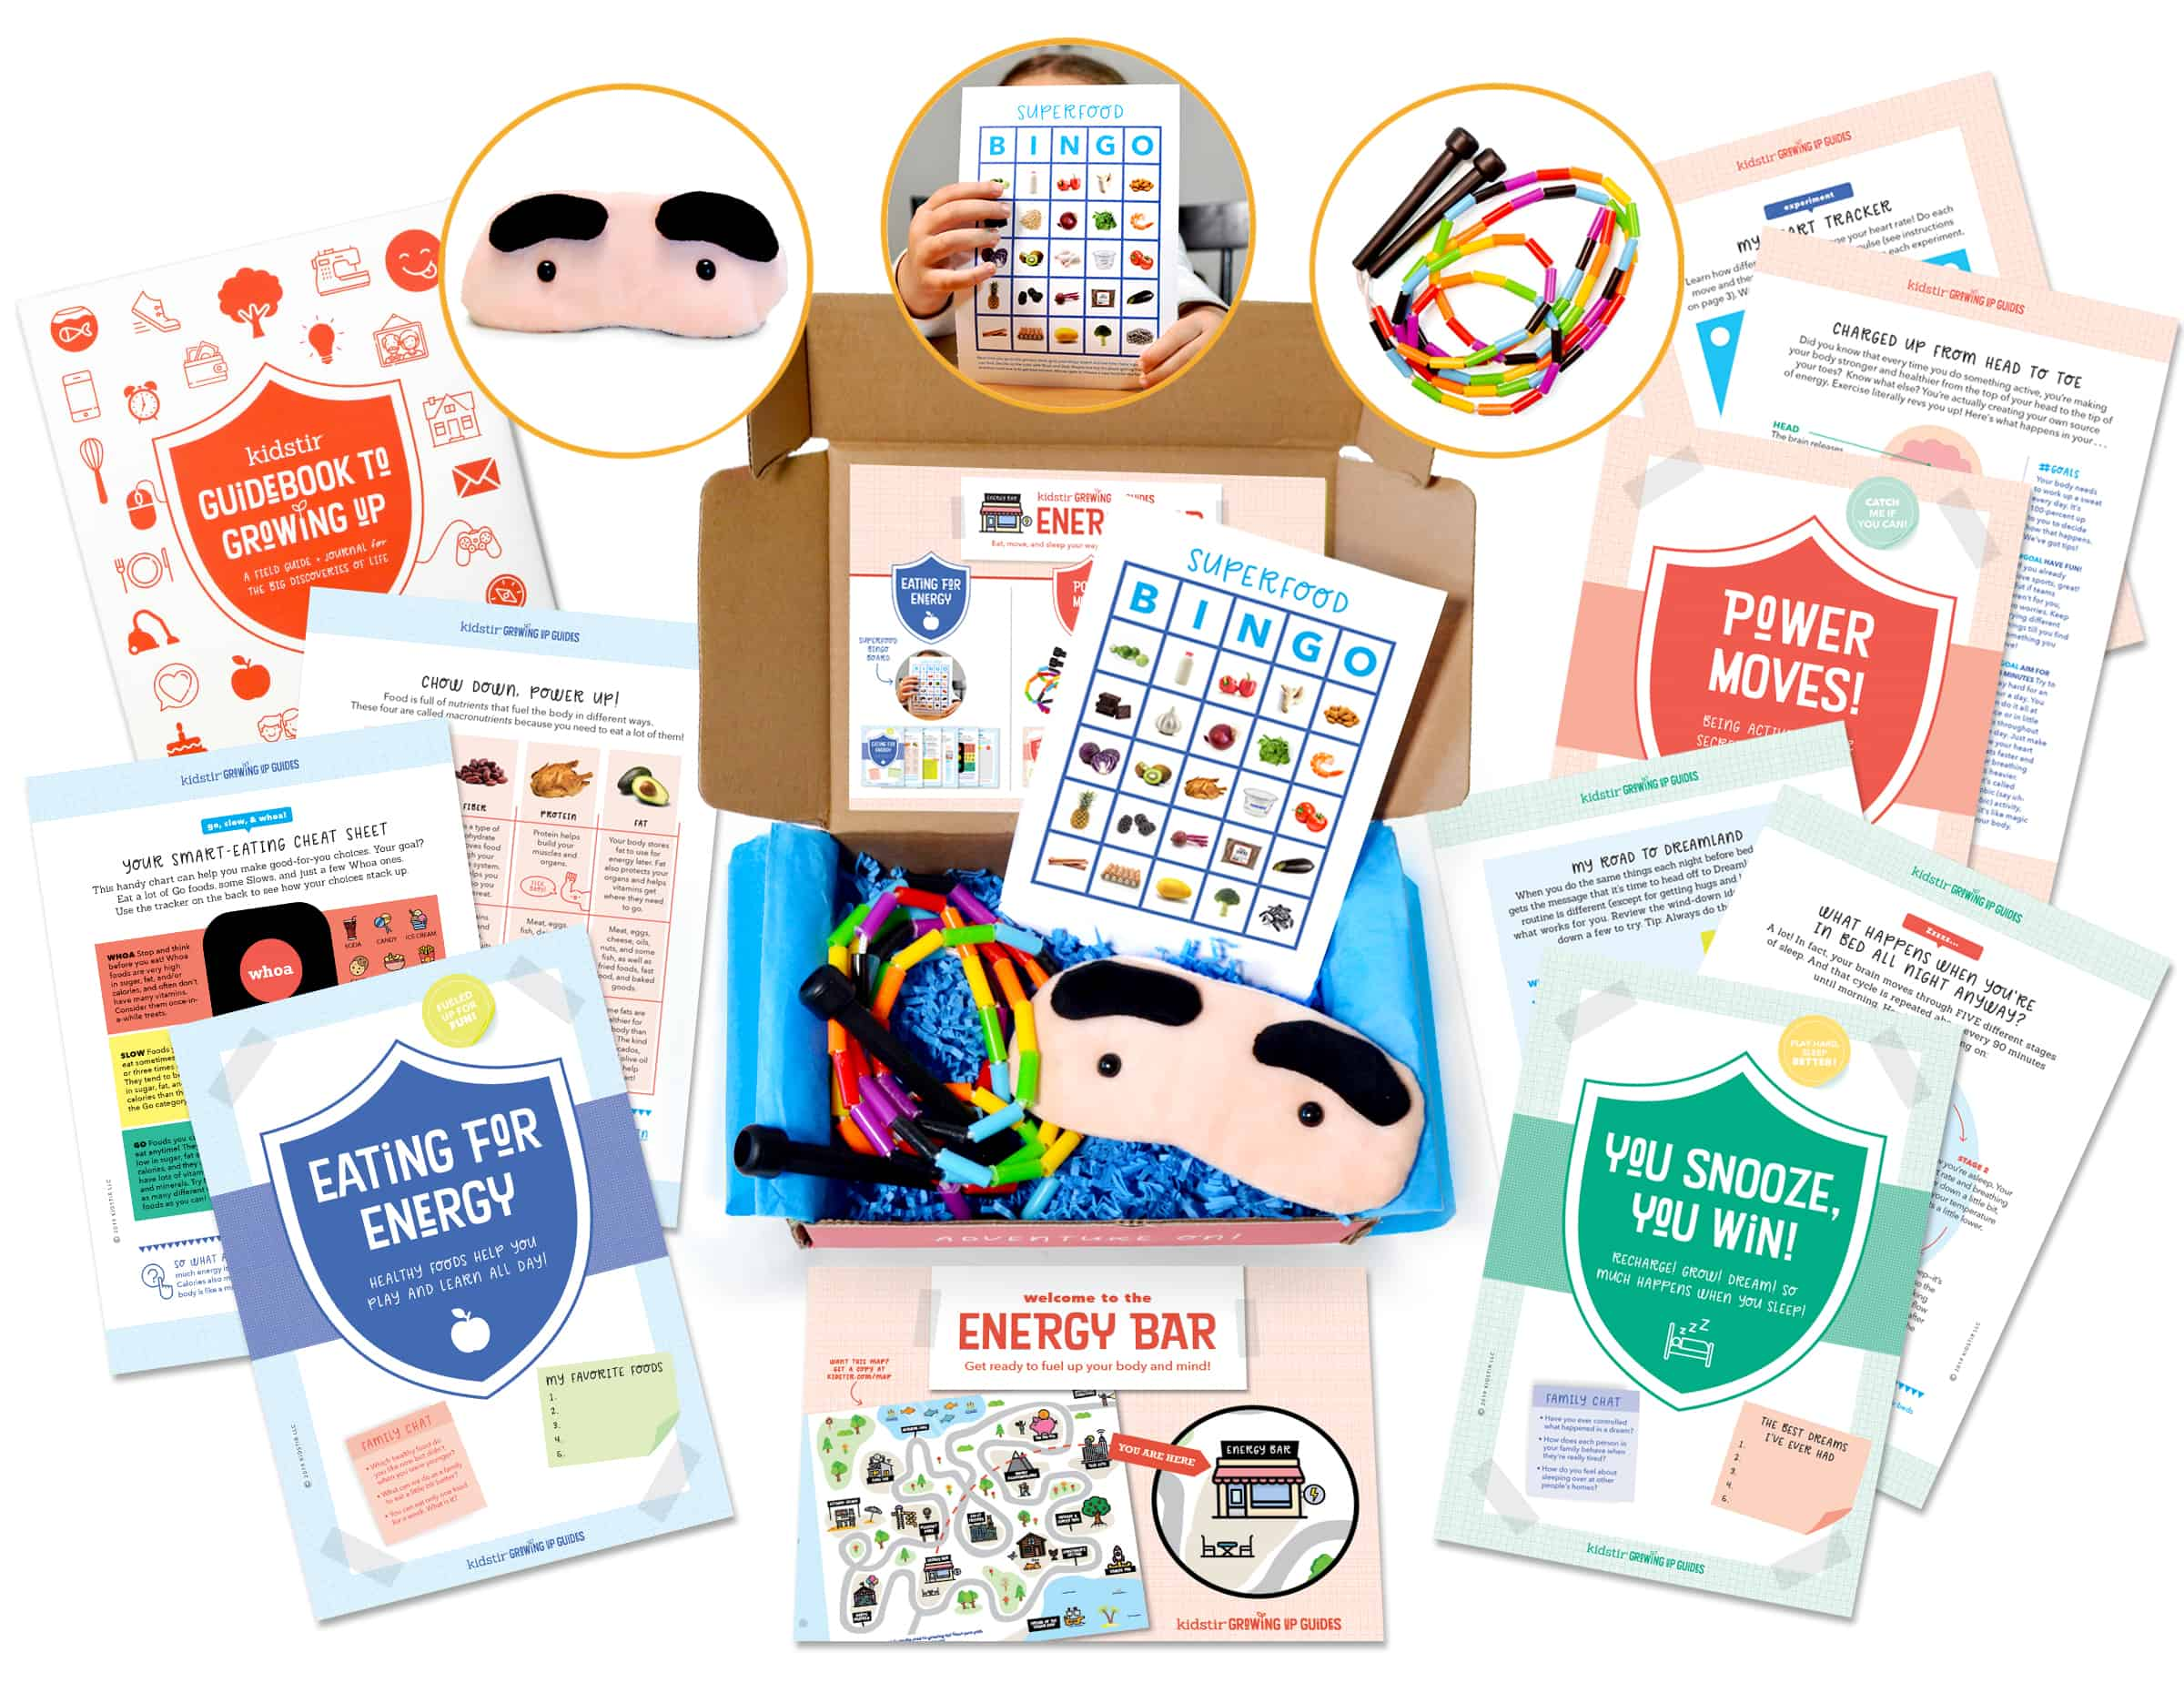 Kidstir Growing Up Guides Coupon: 30% Off First Month!